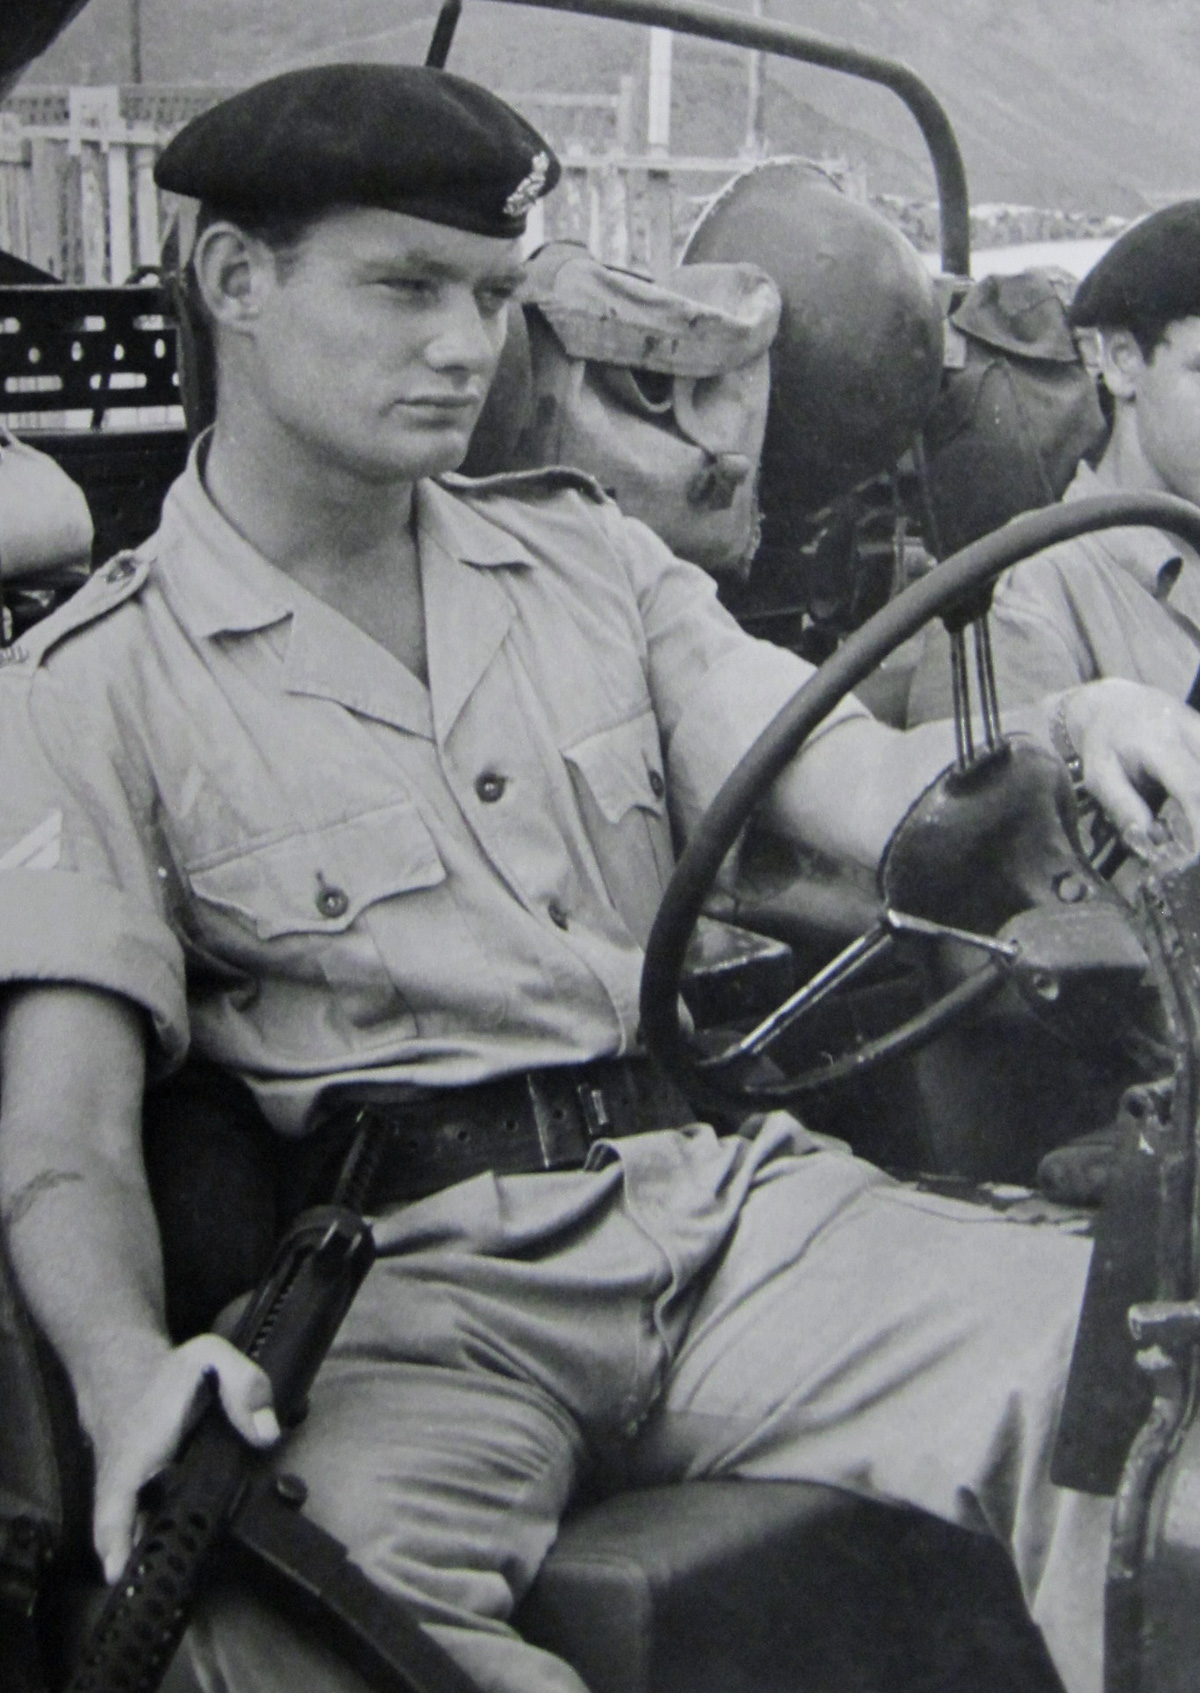 Ronnie Bradley at the wheel of a Land Rover in Aden